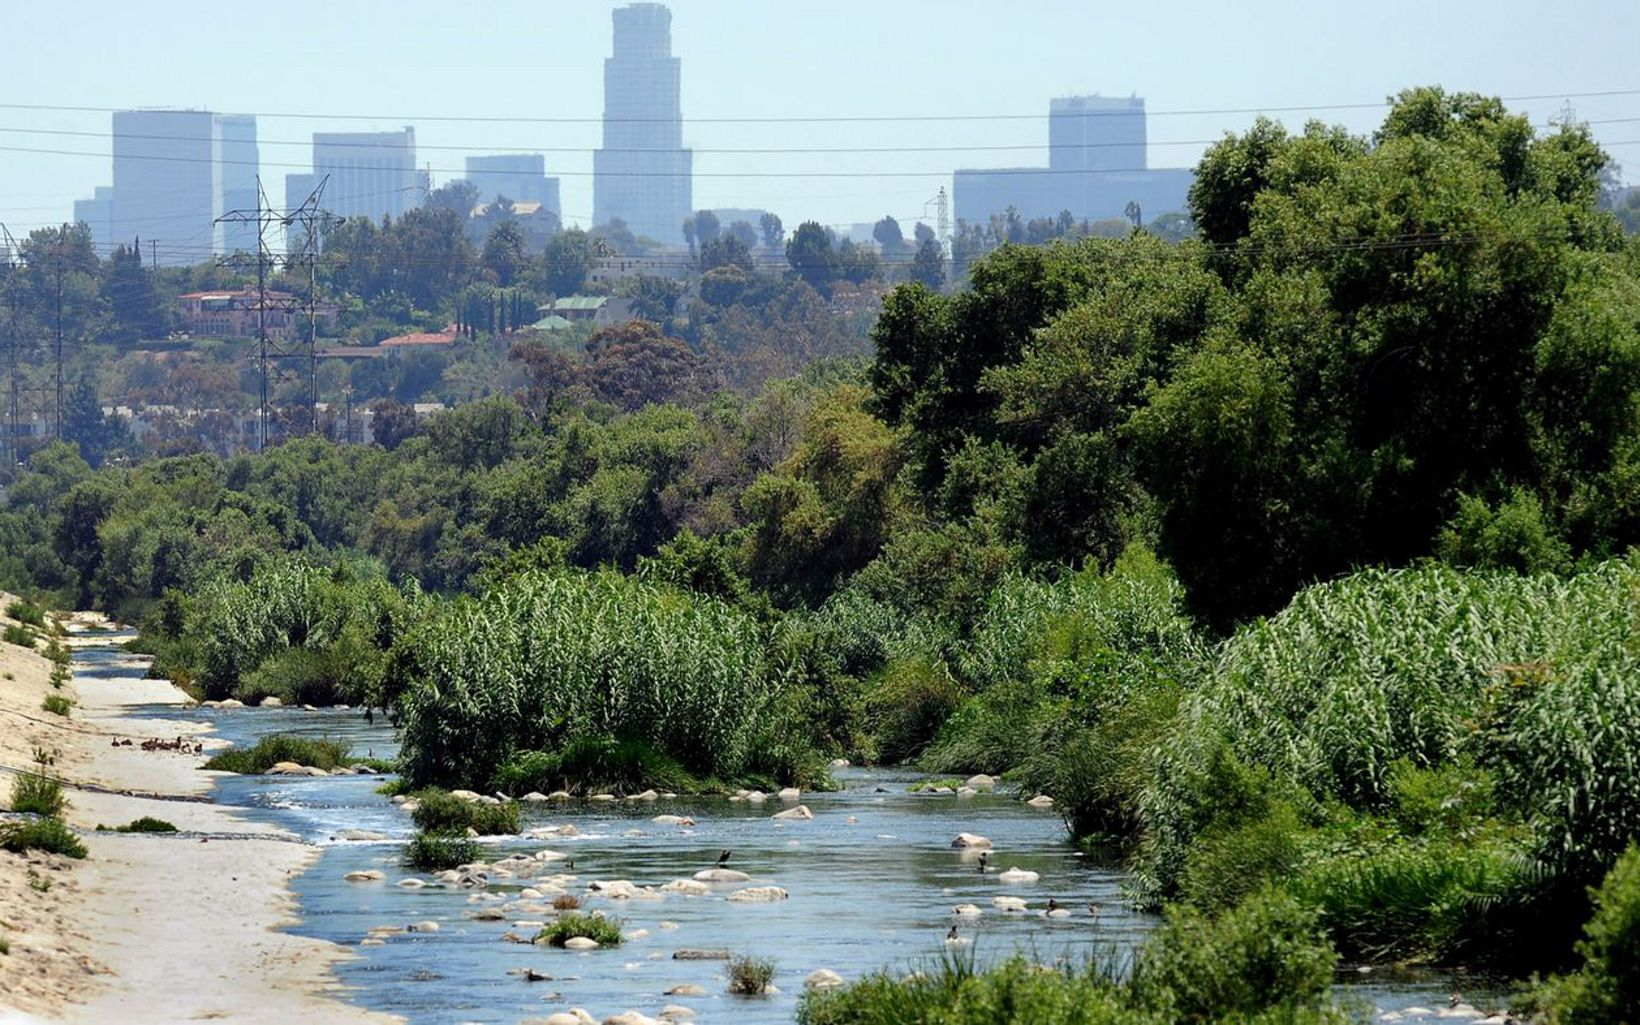 View of LA River with Los Angeles in the background